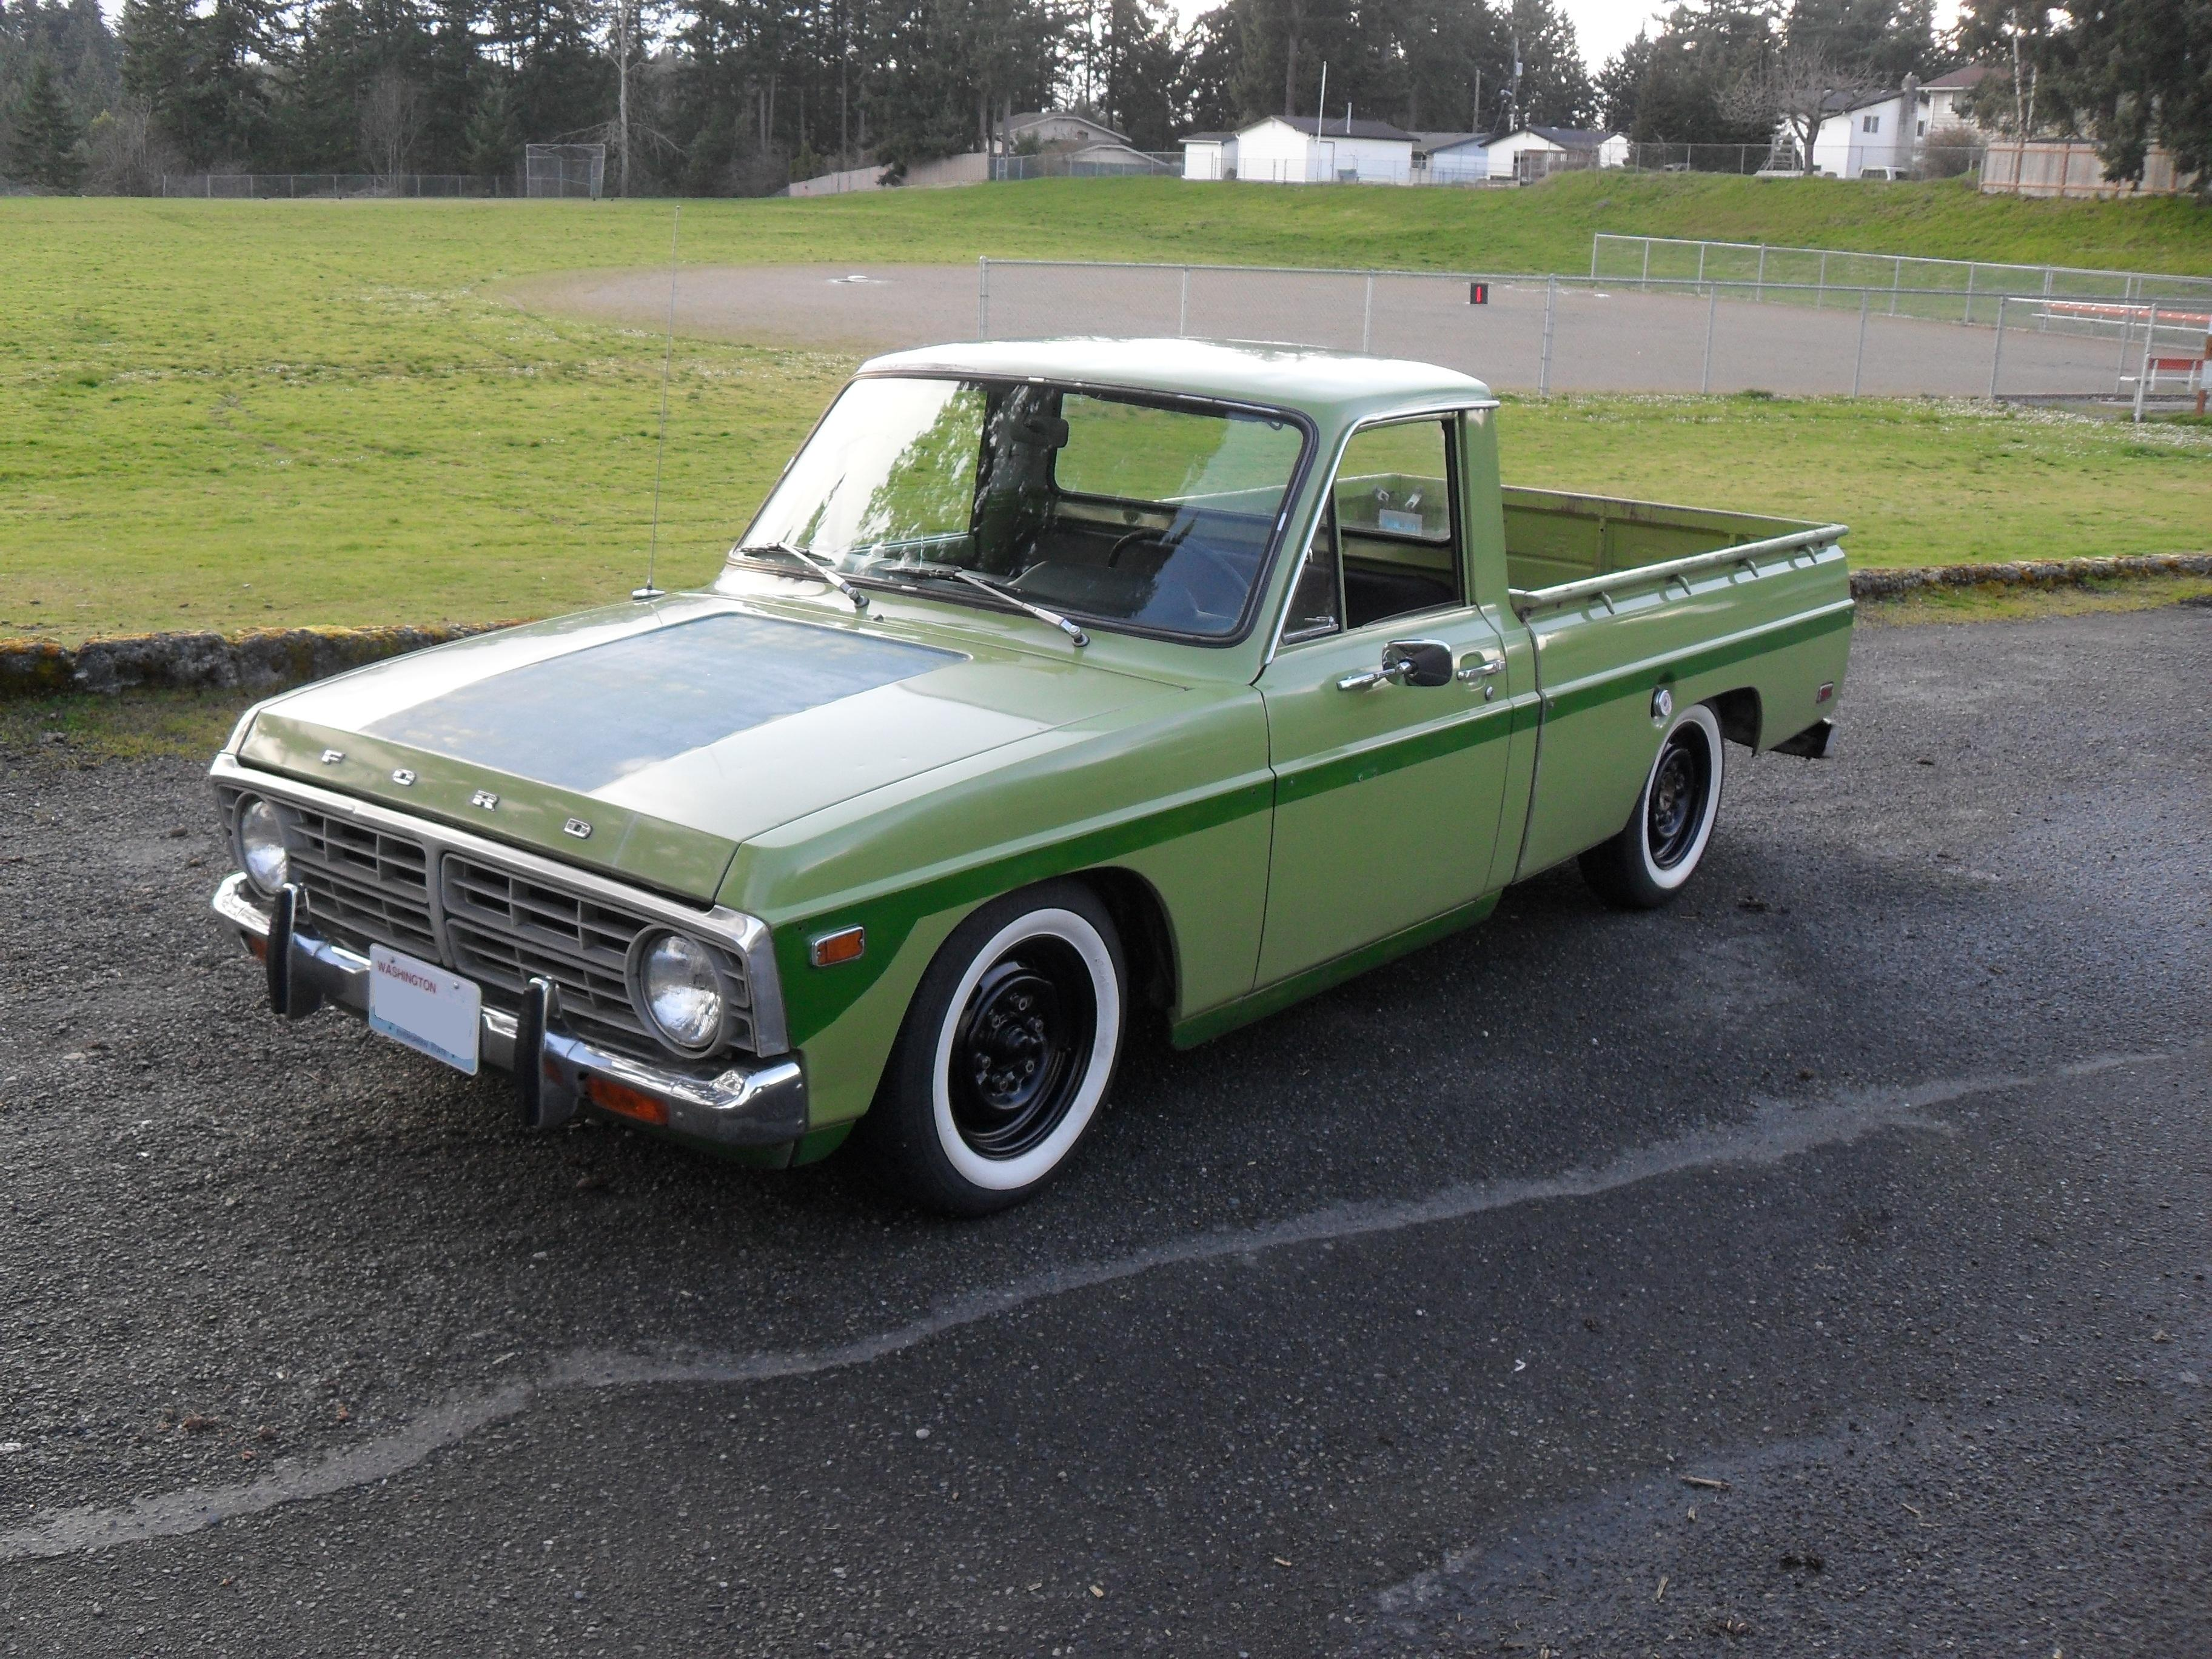 zookiecrew2's 1974 Ford Courier